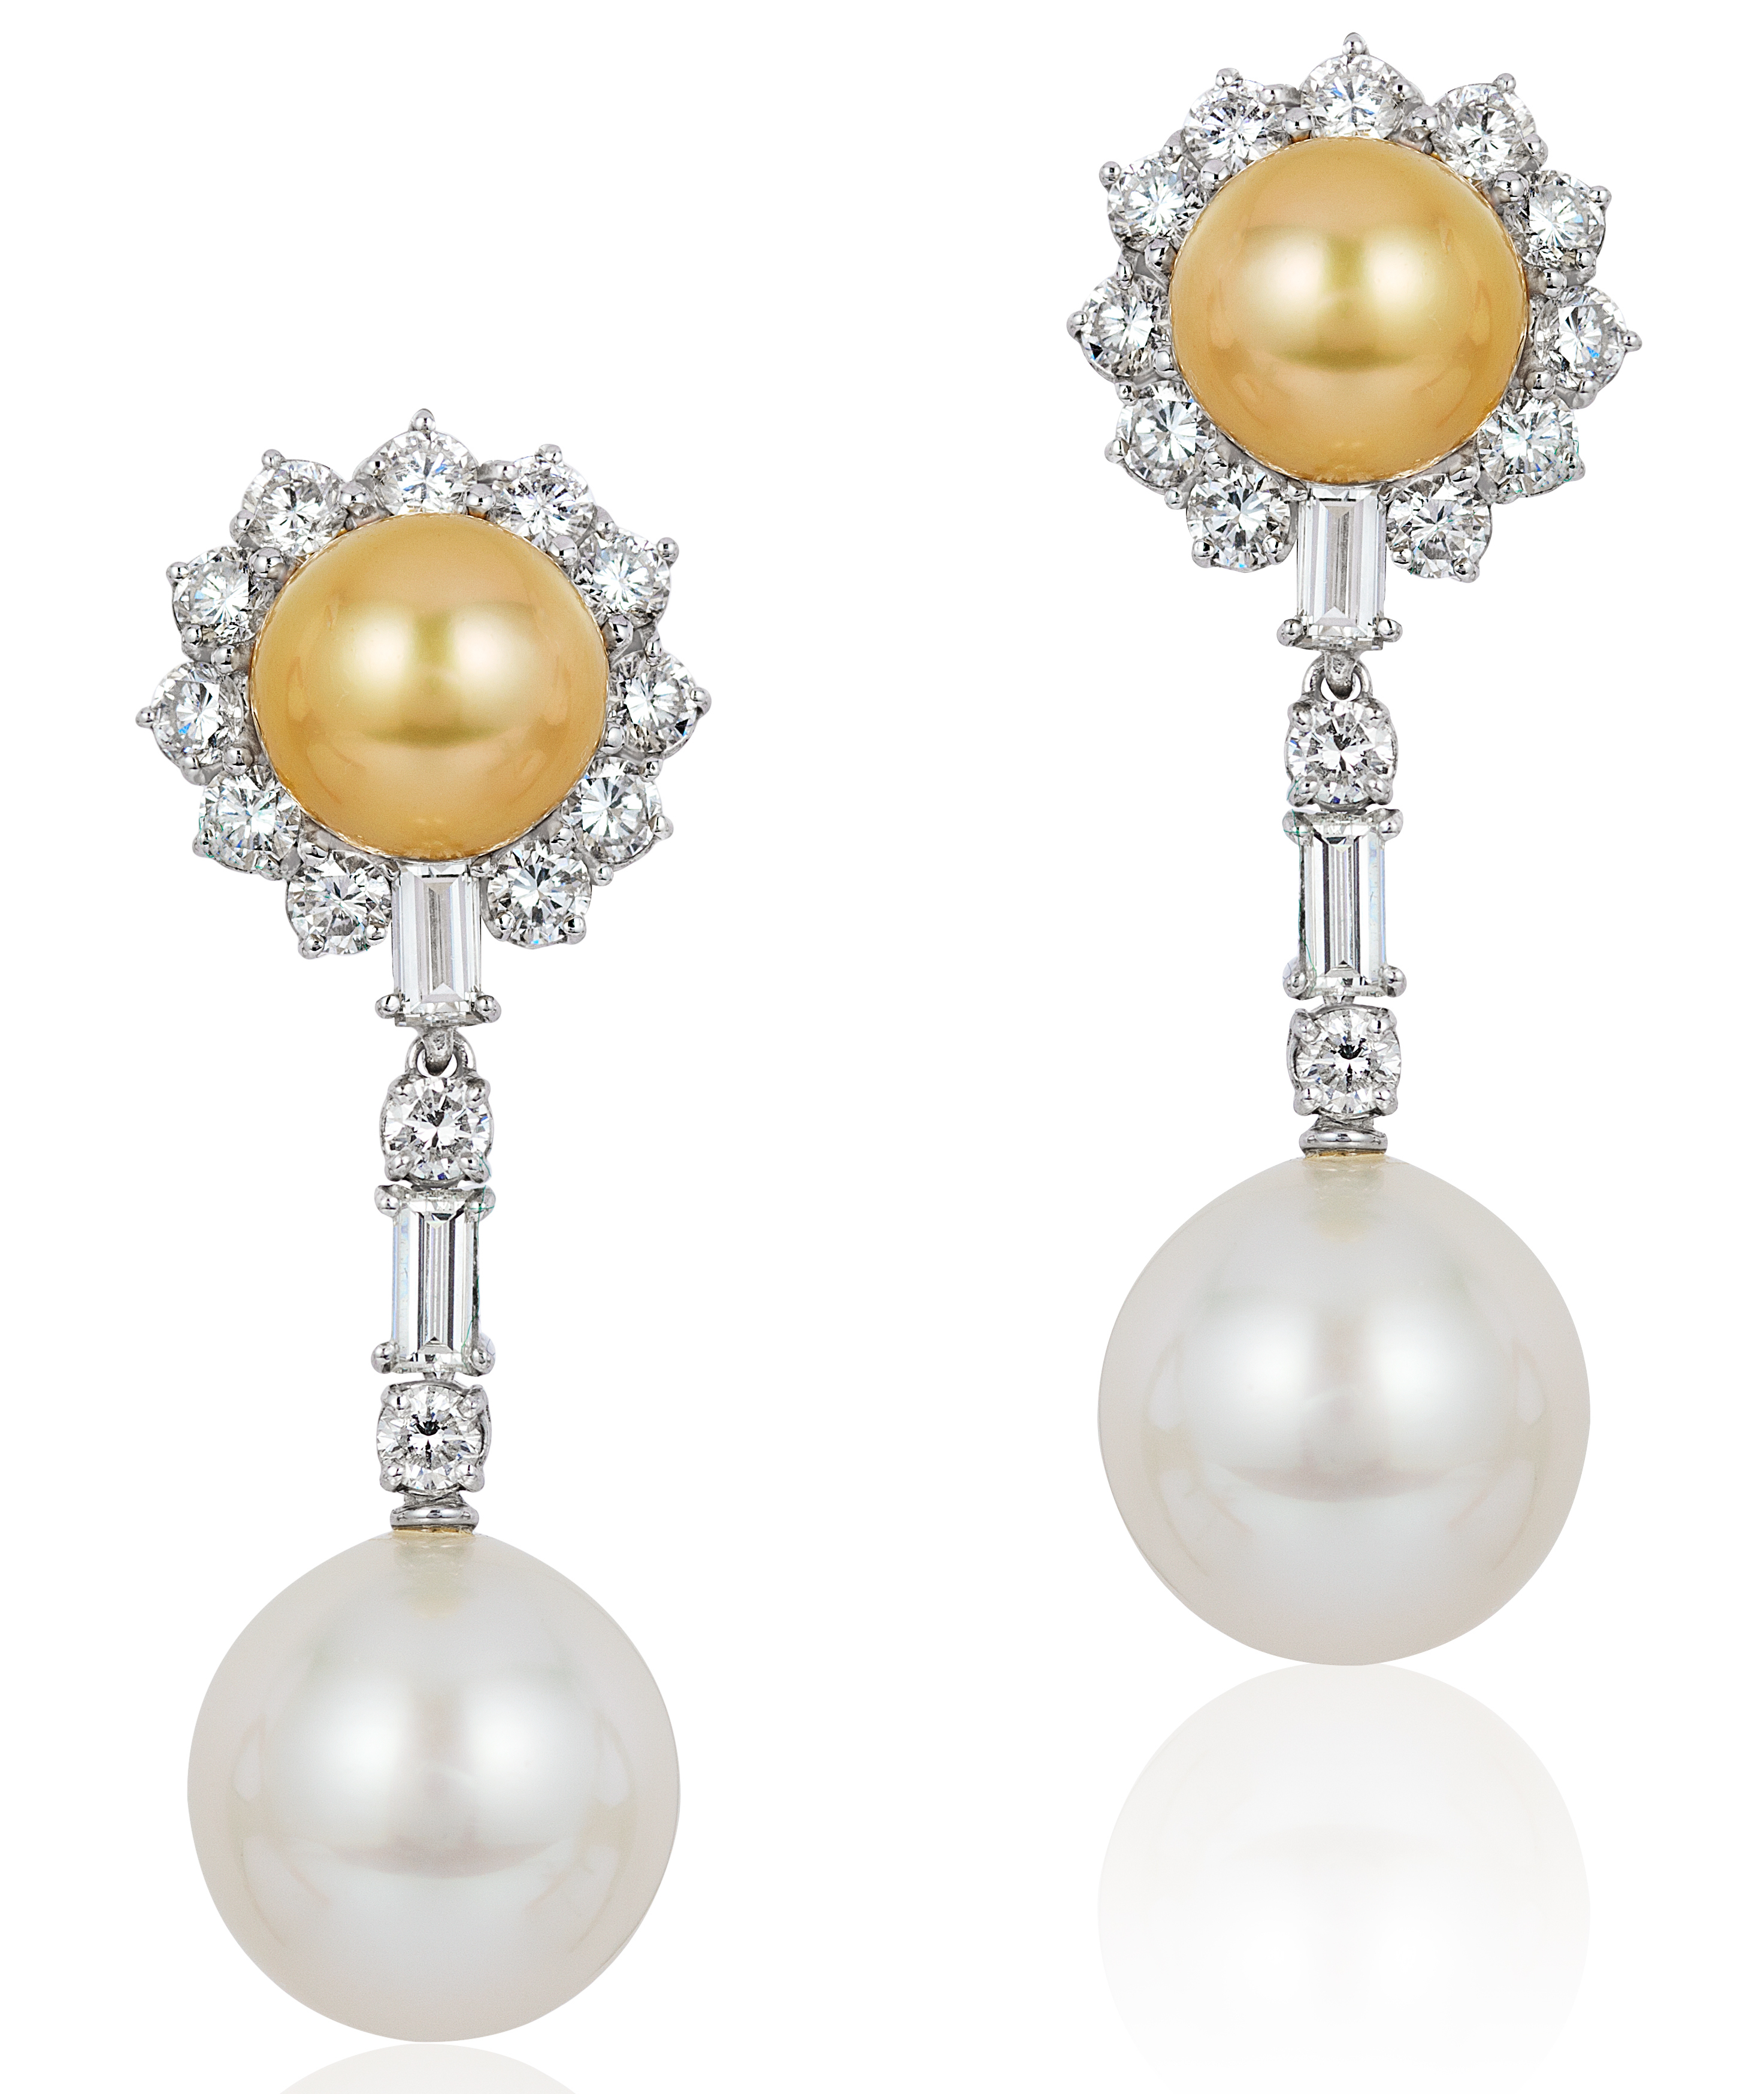 Andreoli pearl drop earrings | JCK On Your Market